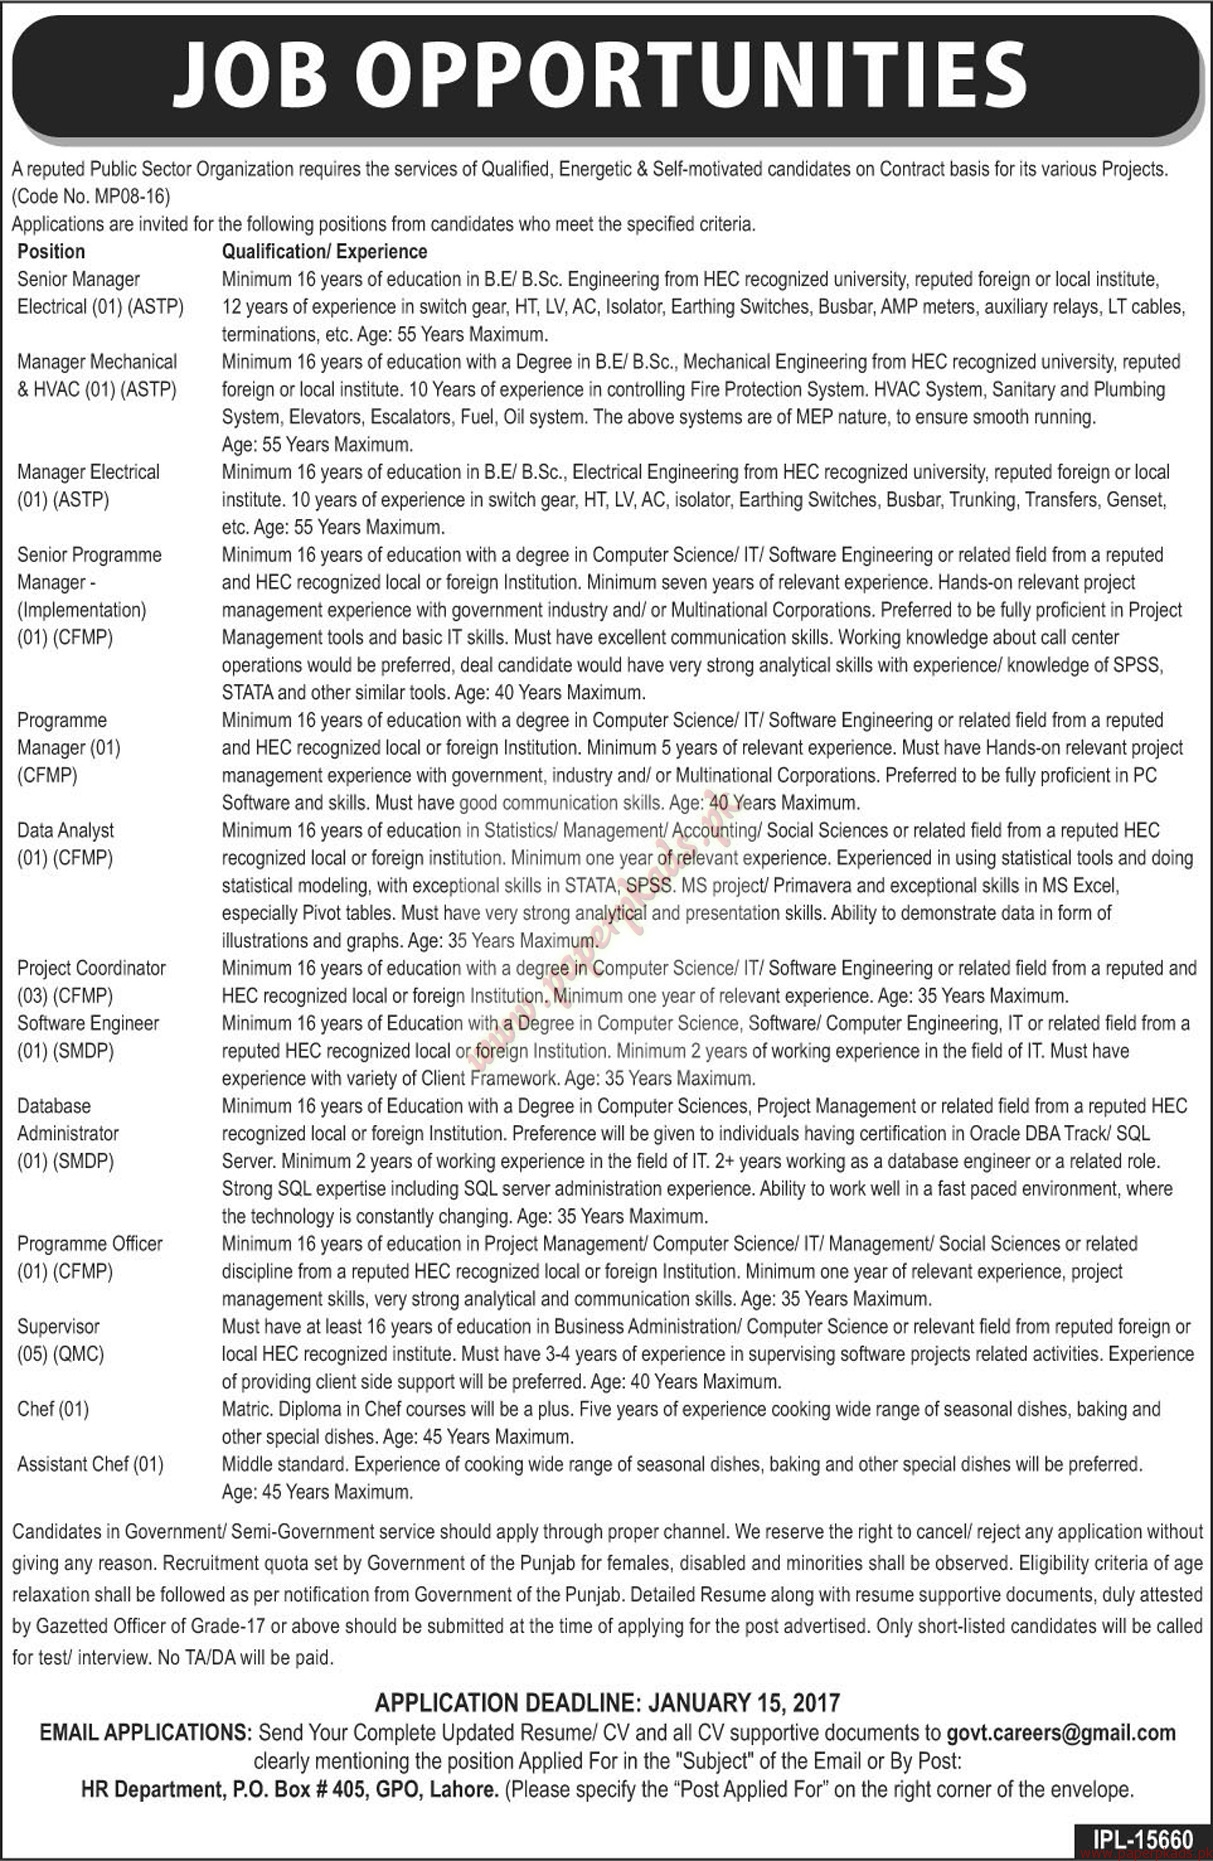 Public Sector Organization Jobs 2 - The Nation Jobs ads 01 January 2017